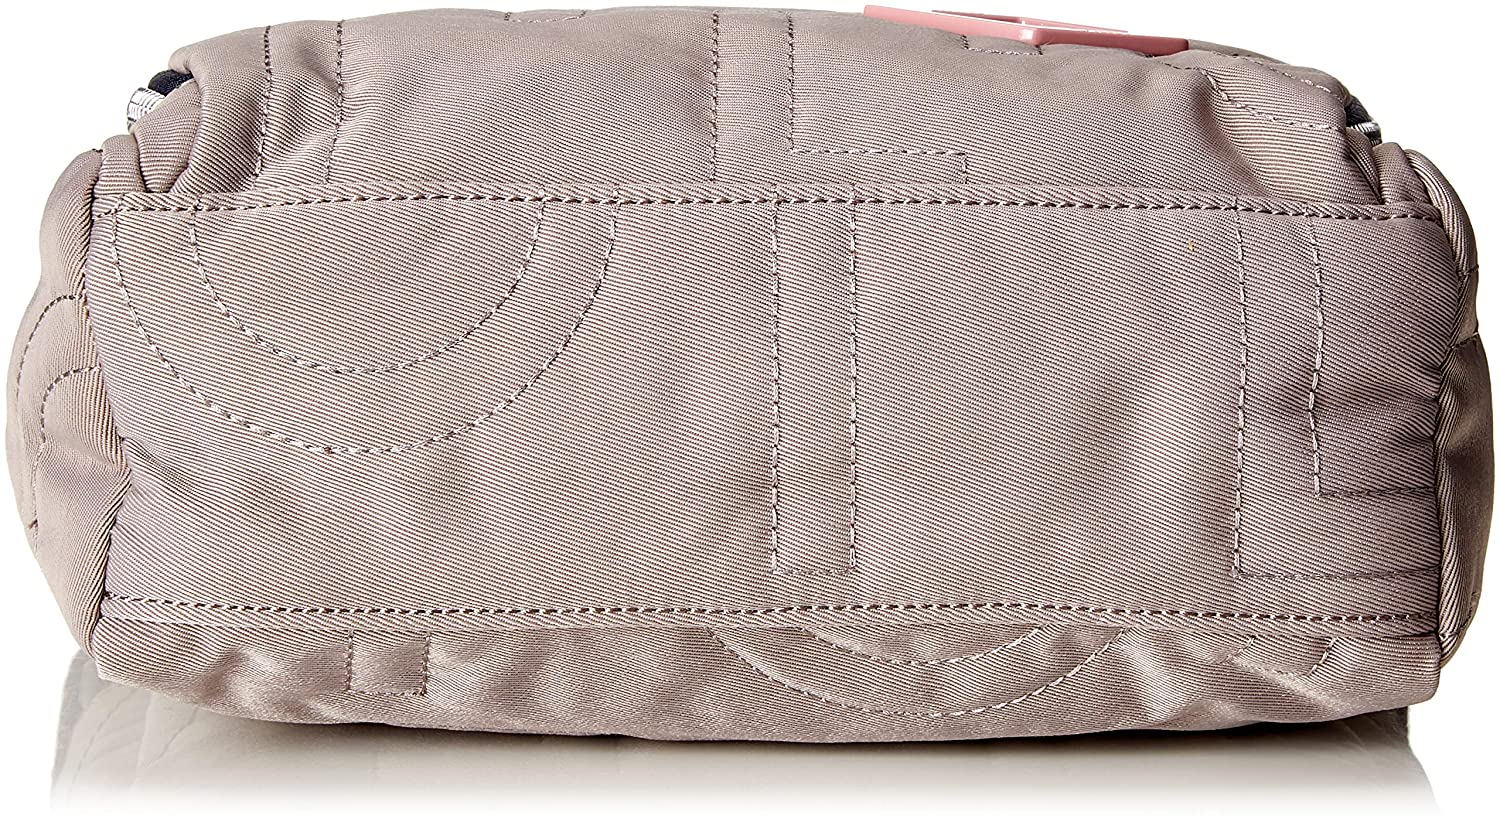 Oilily Damen Spell Shoulderbag Shz Schultertasche, 10x18x24 cm Grau (Light Grey)